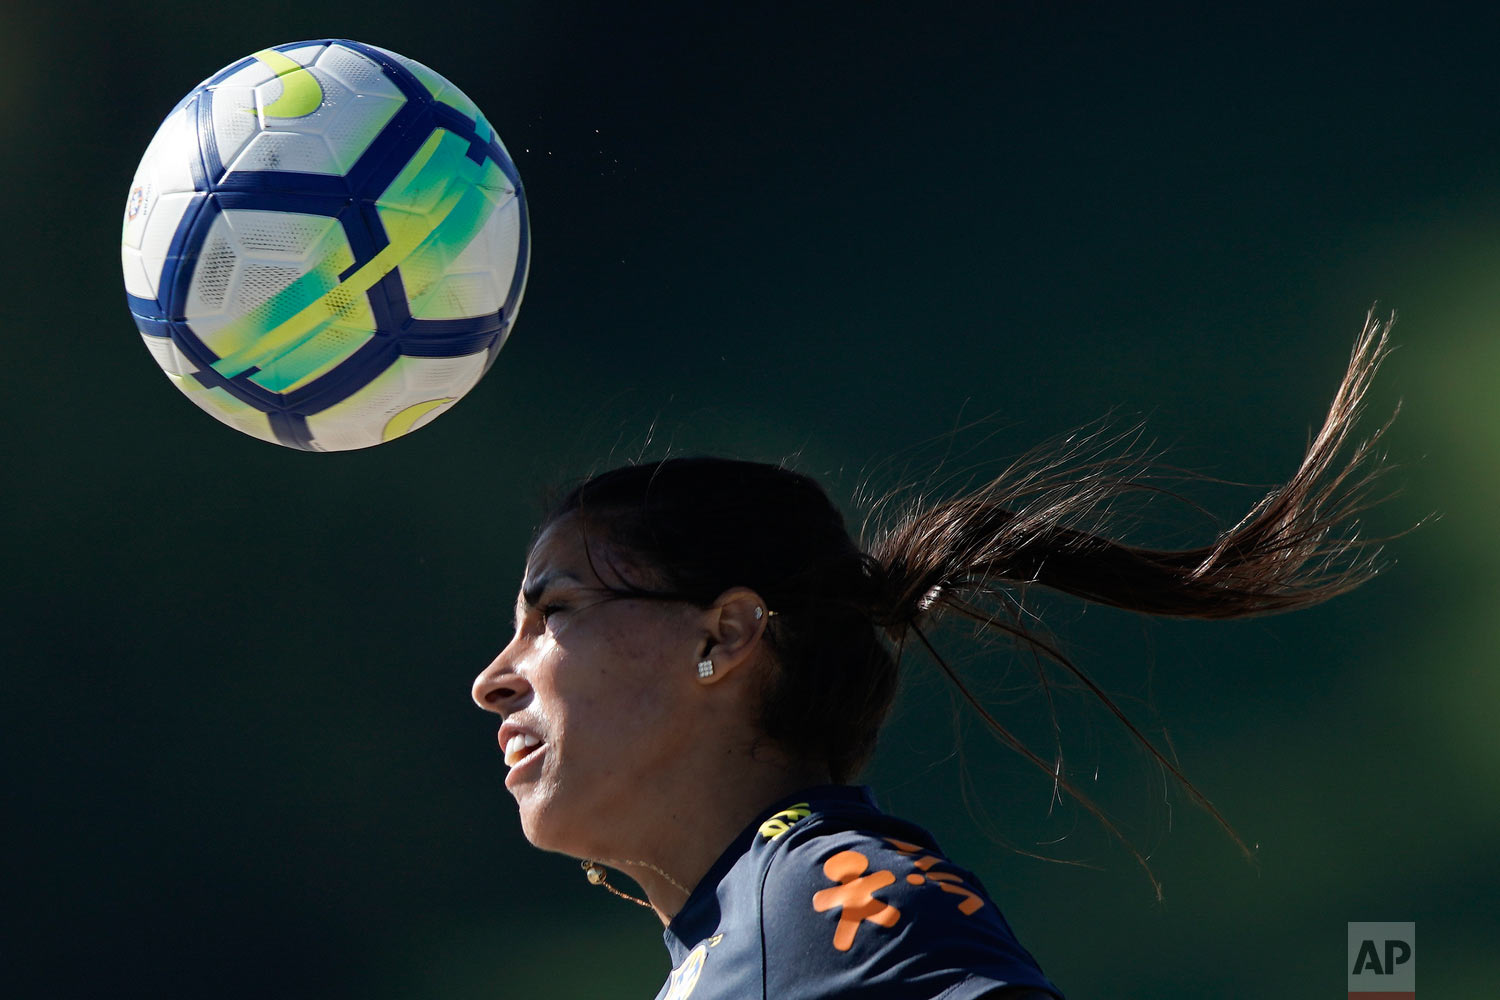 Brazil's Fabiana trains with her Brazilian national soccer team ahead of the women's World Cup in France in Teresopolis, Brazil, Jan. 22, 2019. (AP Photo/Leo Correa)